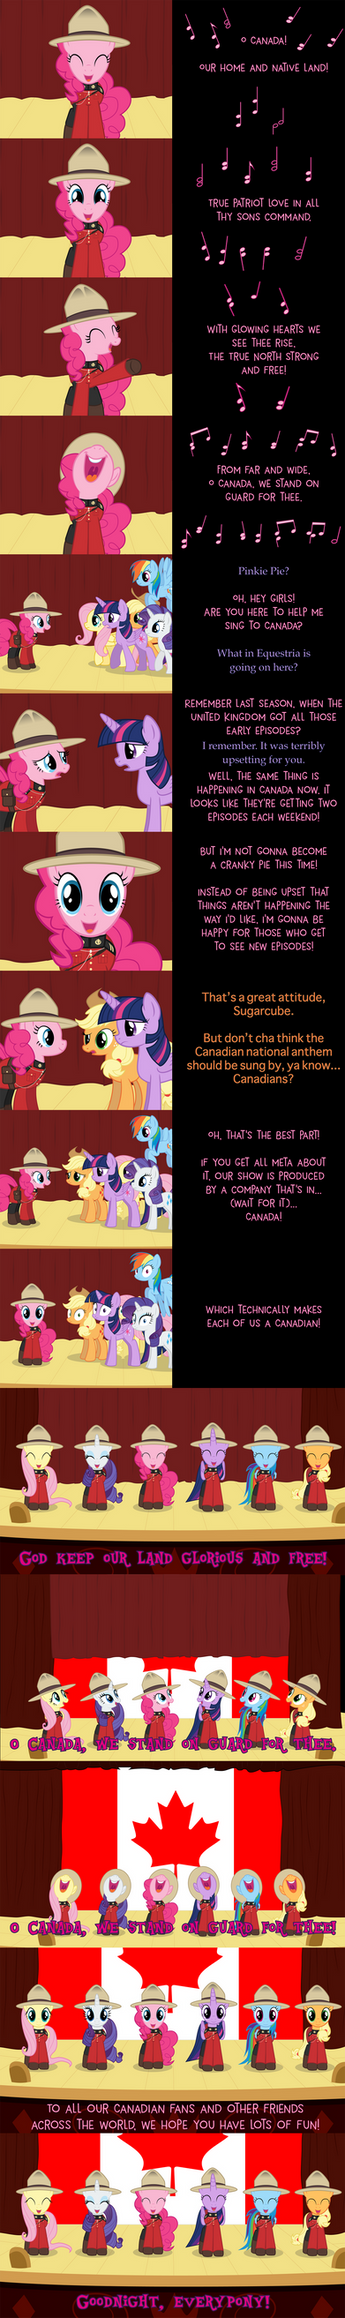 Pinkie Pie Says Goodnight: O Canada by MLP-Silver-Quill